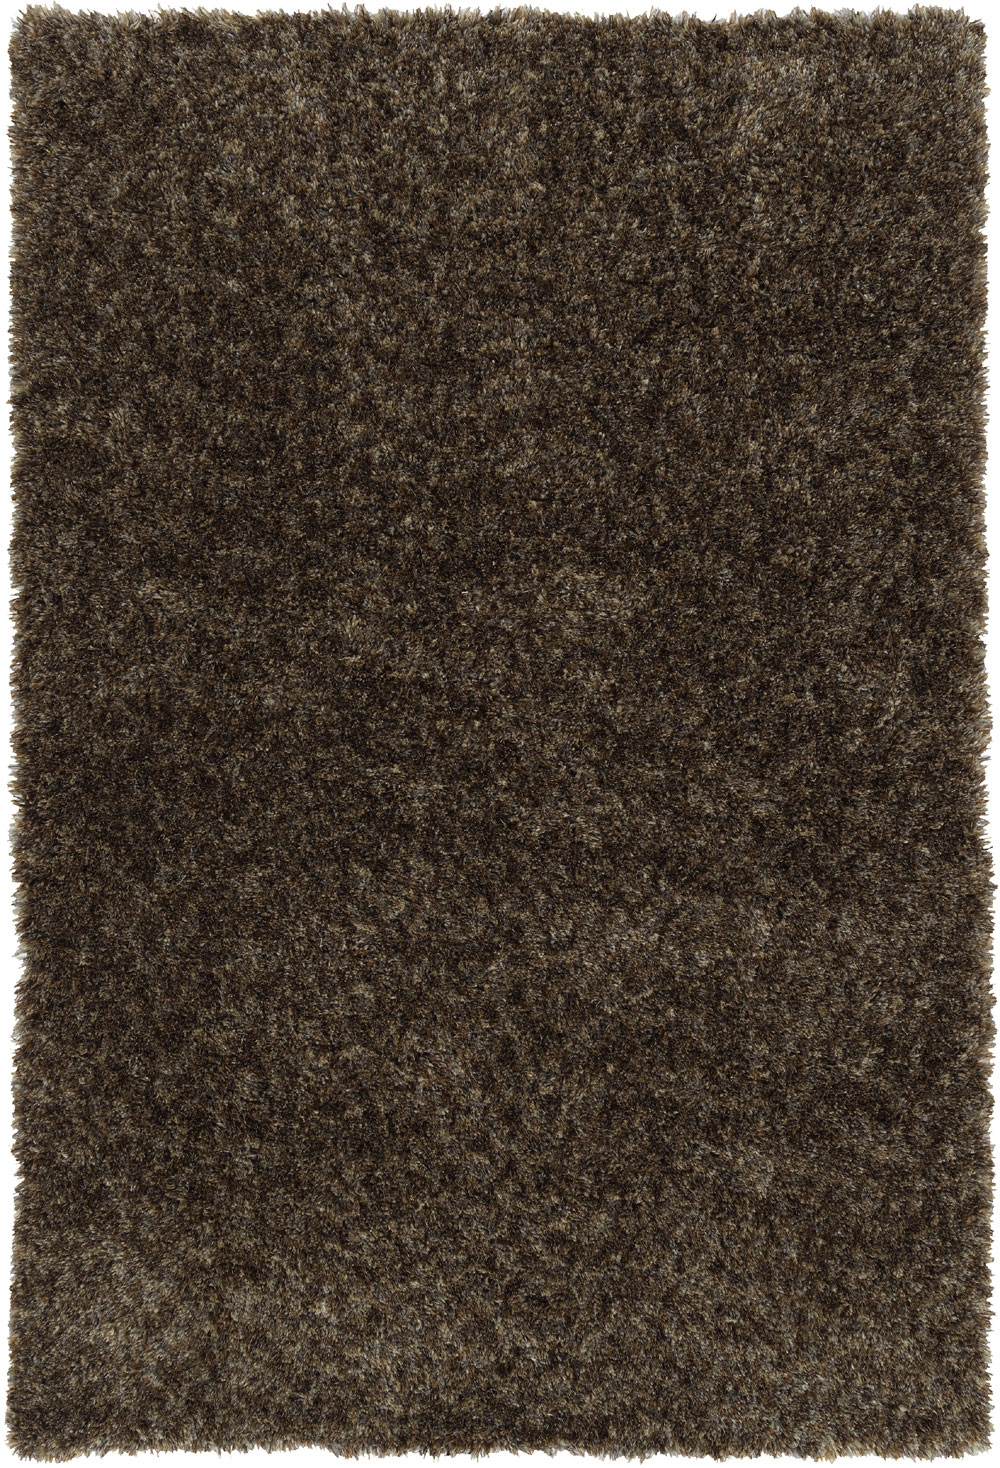 Dalyn Cabot CT1 Chocolate Rug